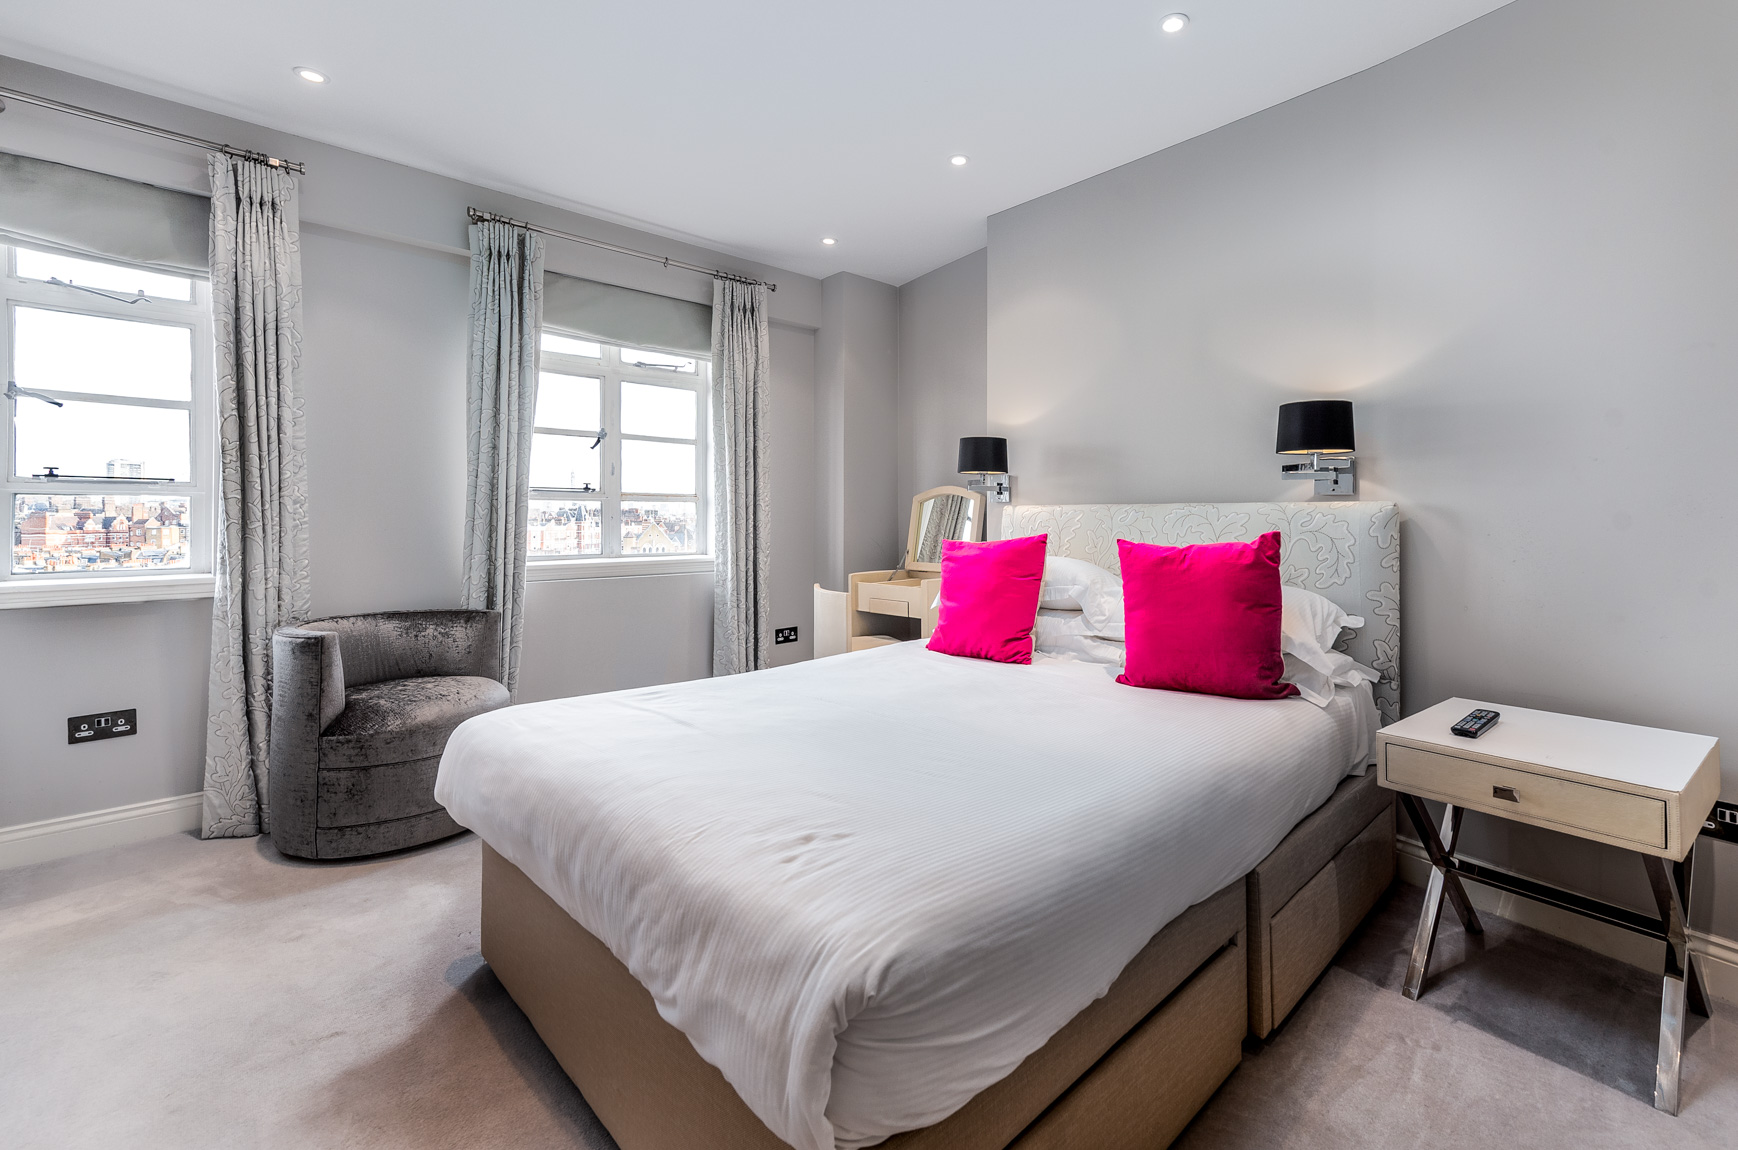 Bedroom at Nell Gwynn House Accommodation, Chelsea, London - Citybase Apartments